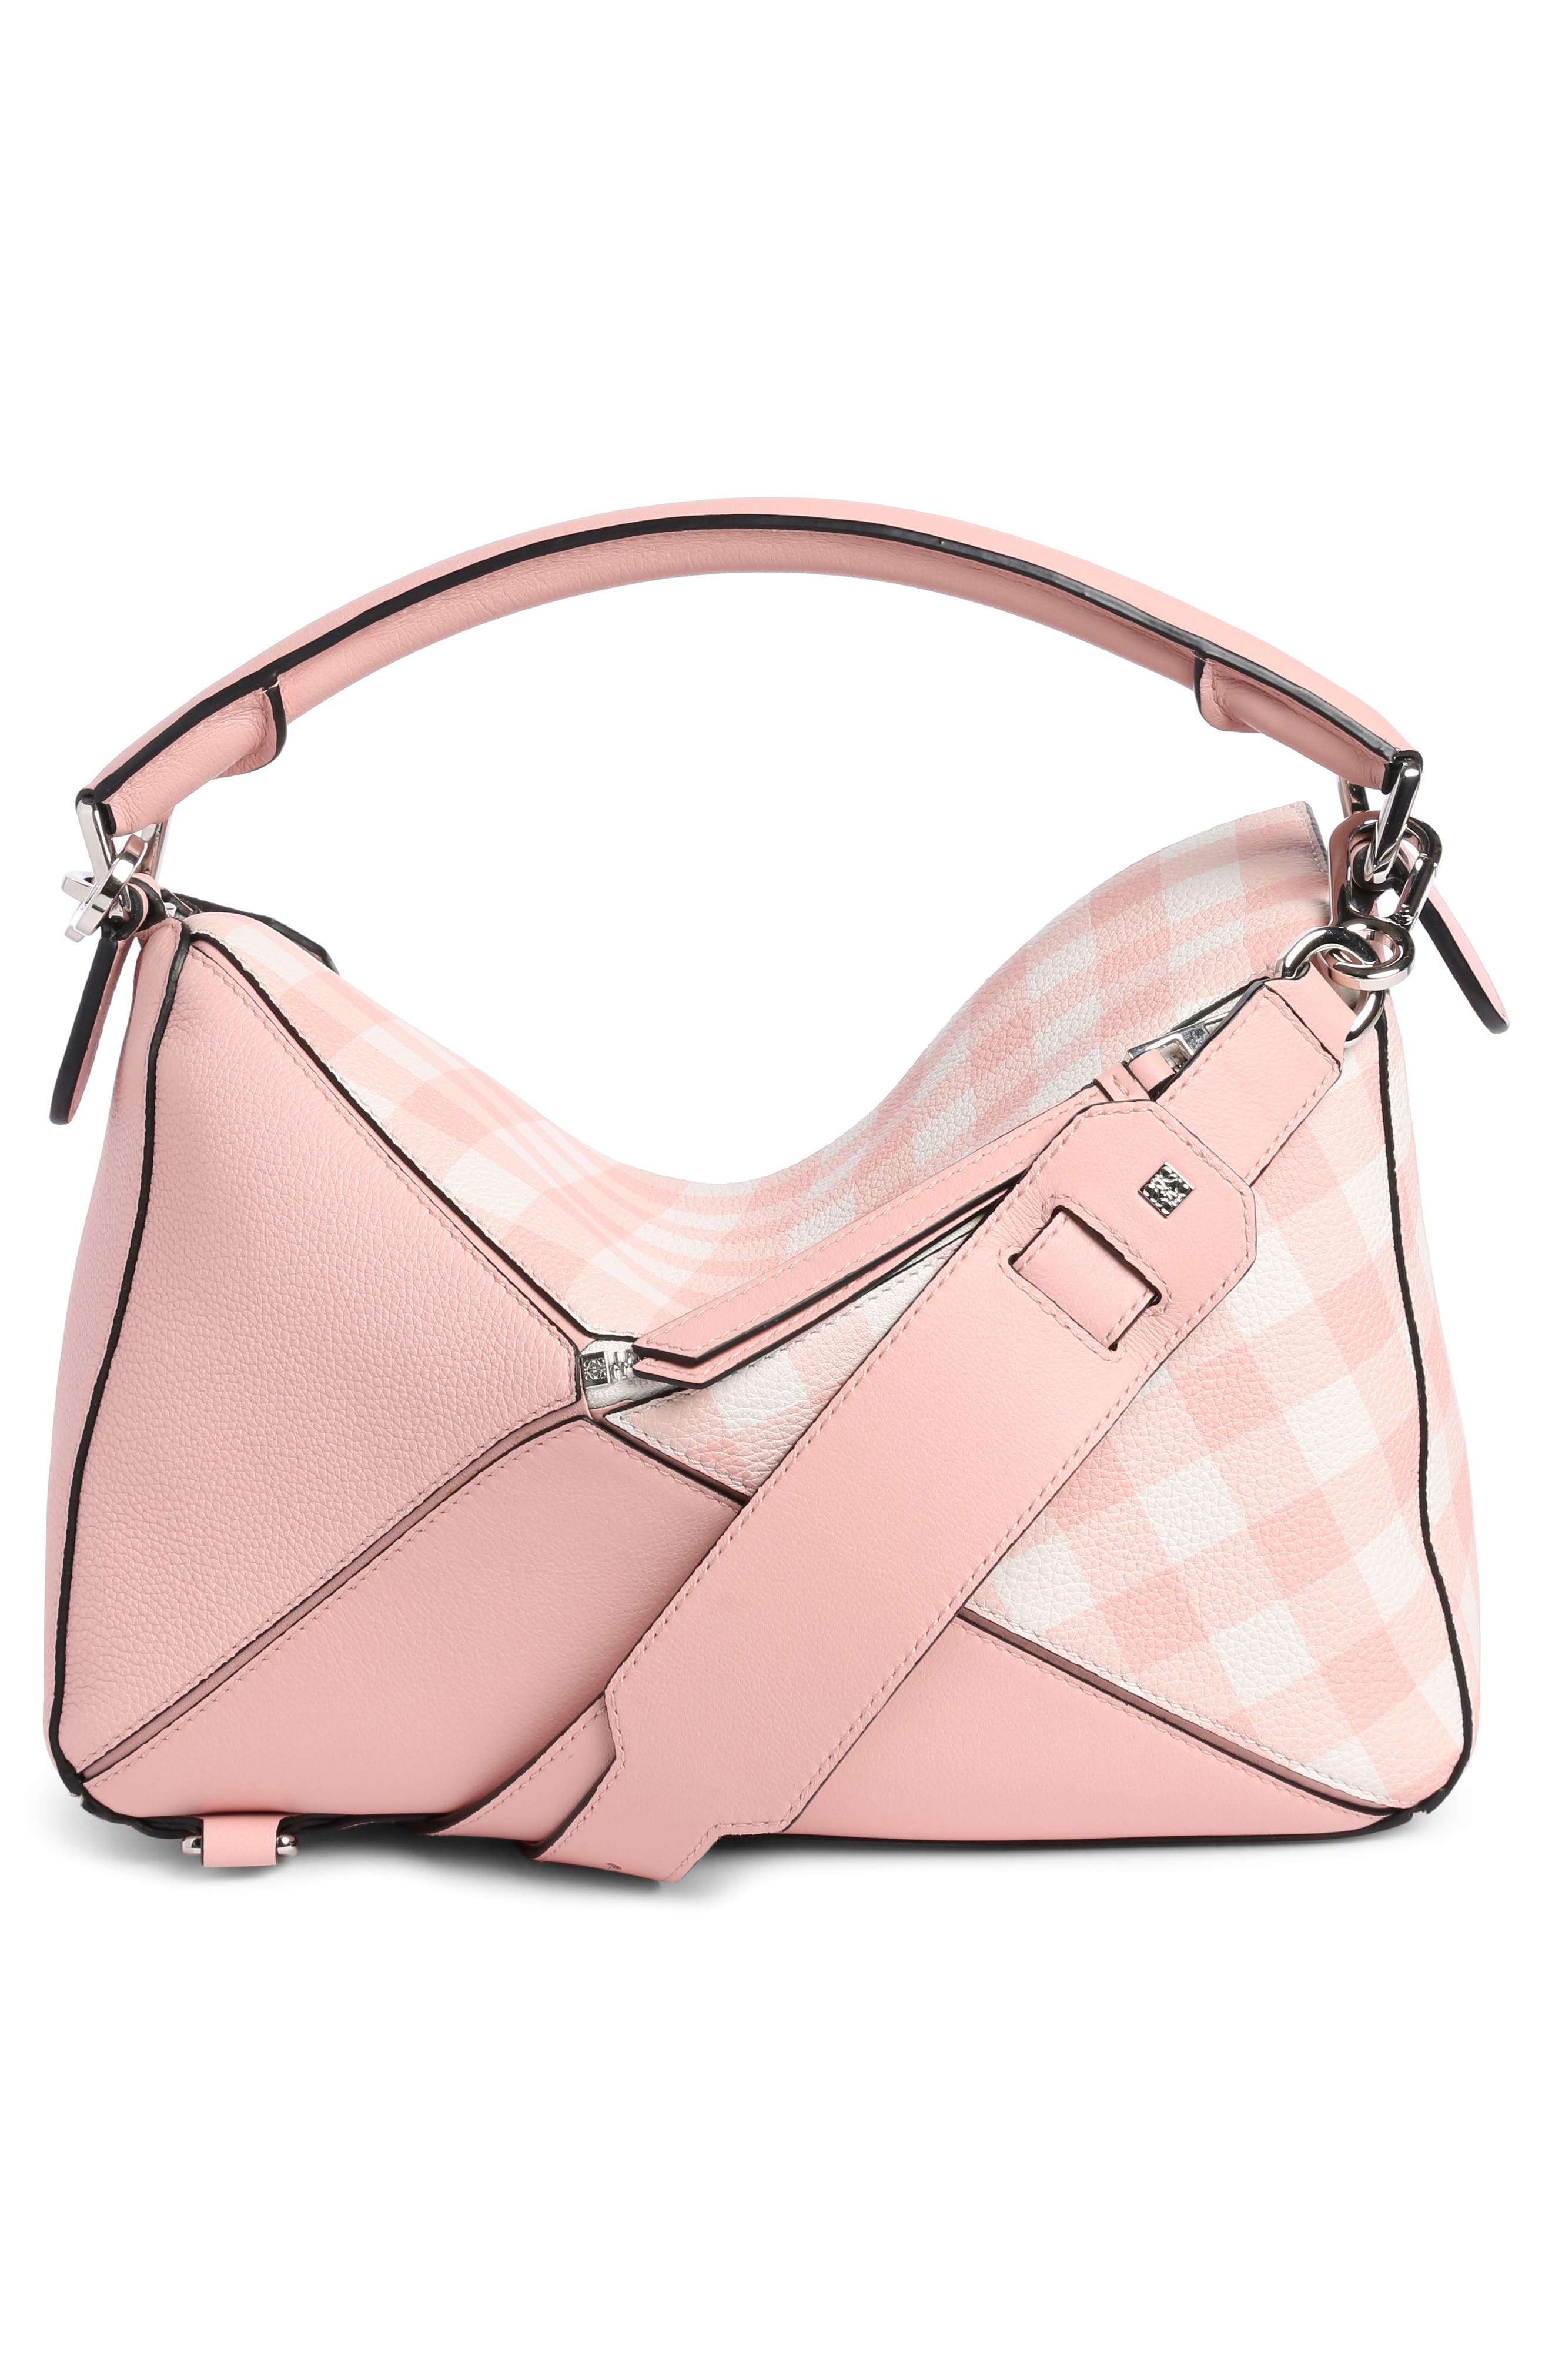 Puzzle Gingham Calfskin Leather Bag,                             Alternate thumbnail 2, color,                             Salmon